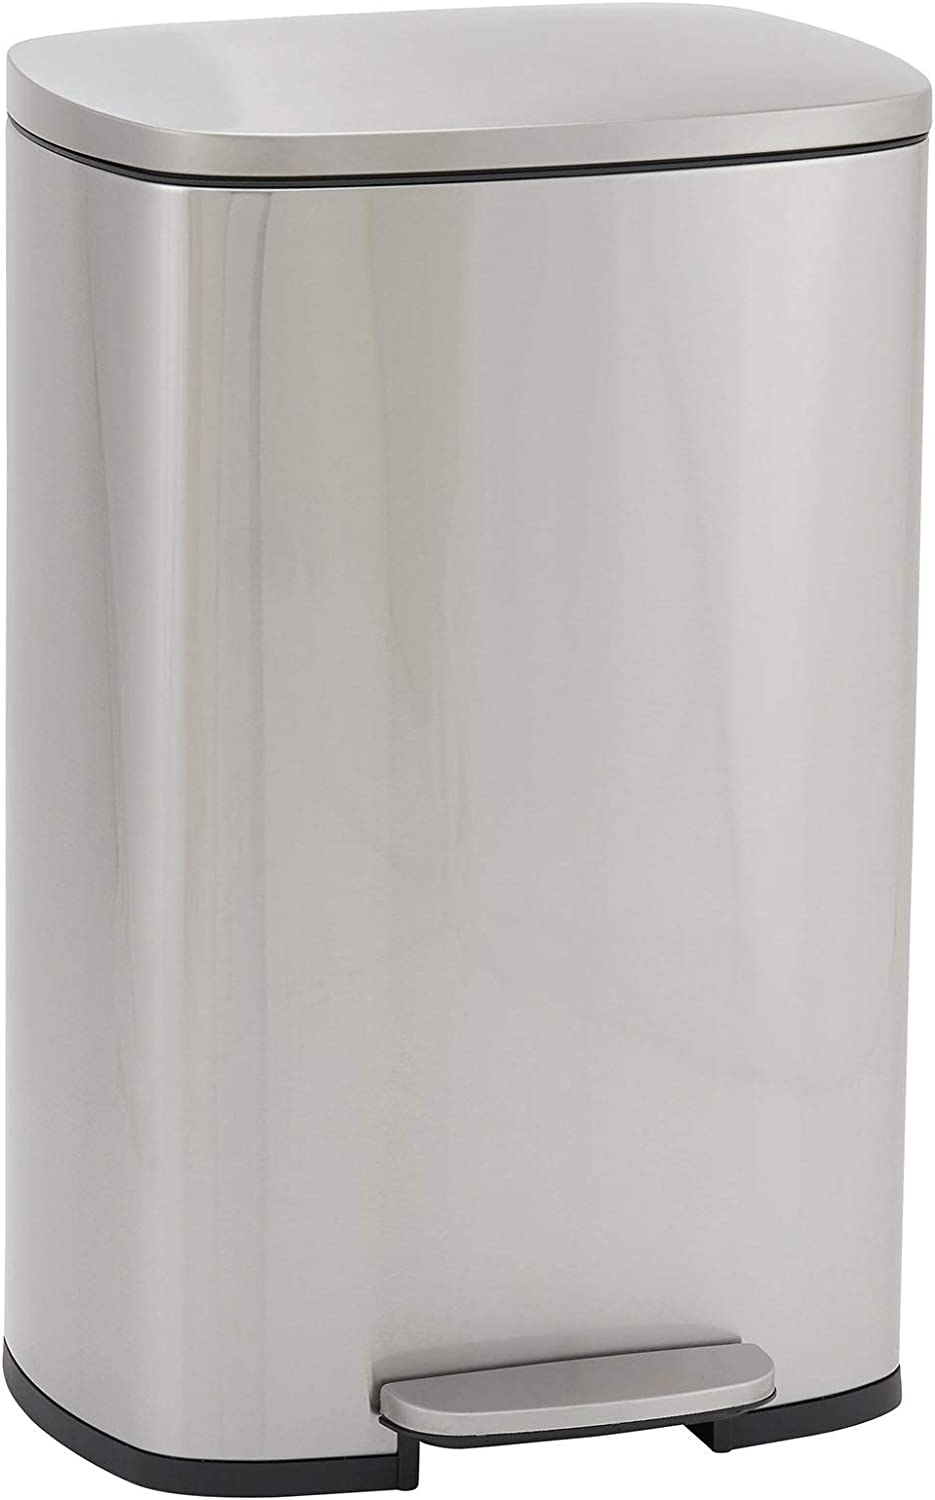 Design Oakland Mall Trend Rectangular Stainless Steel with Long Beach Mall Step Sof Trash Can